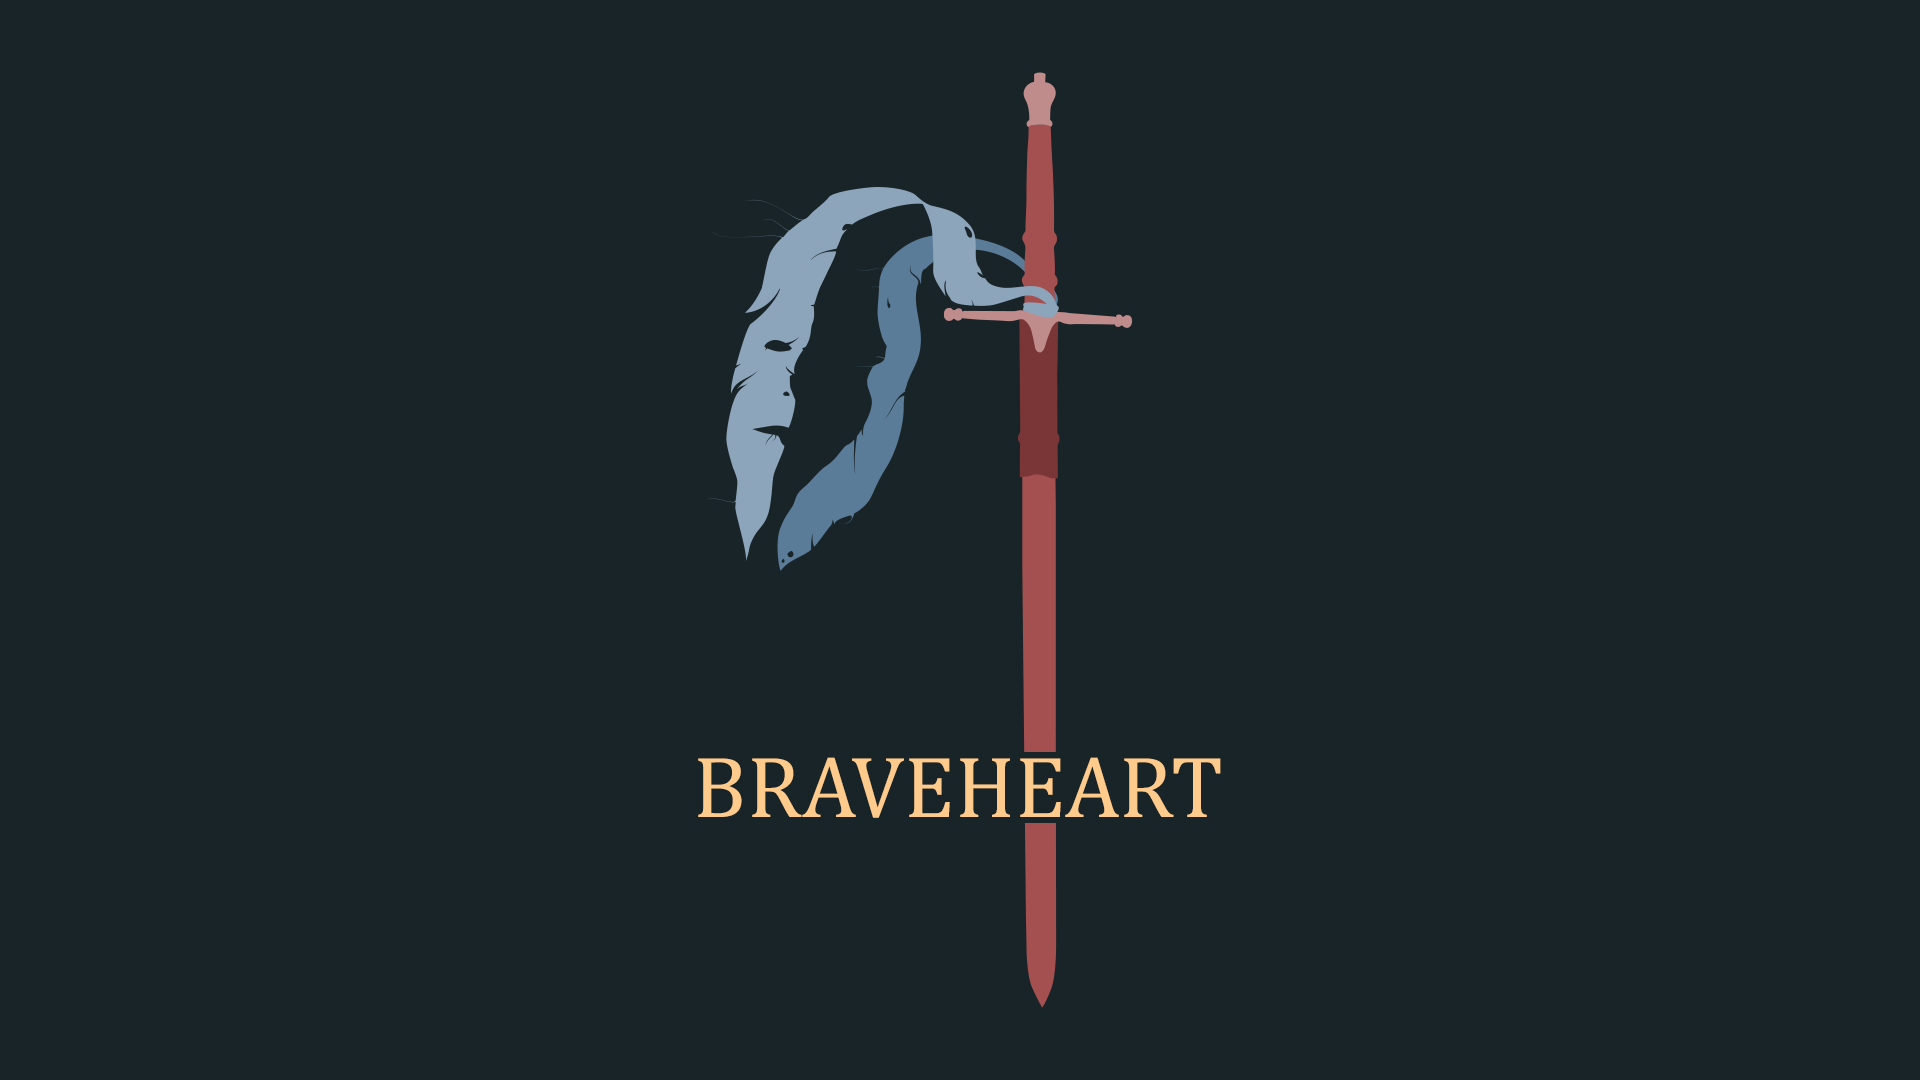 Made A Braveheart Poster And Decided To Make It A Wallpaper As Well Braveheart Wallpaper Movie Wallpapers